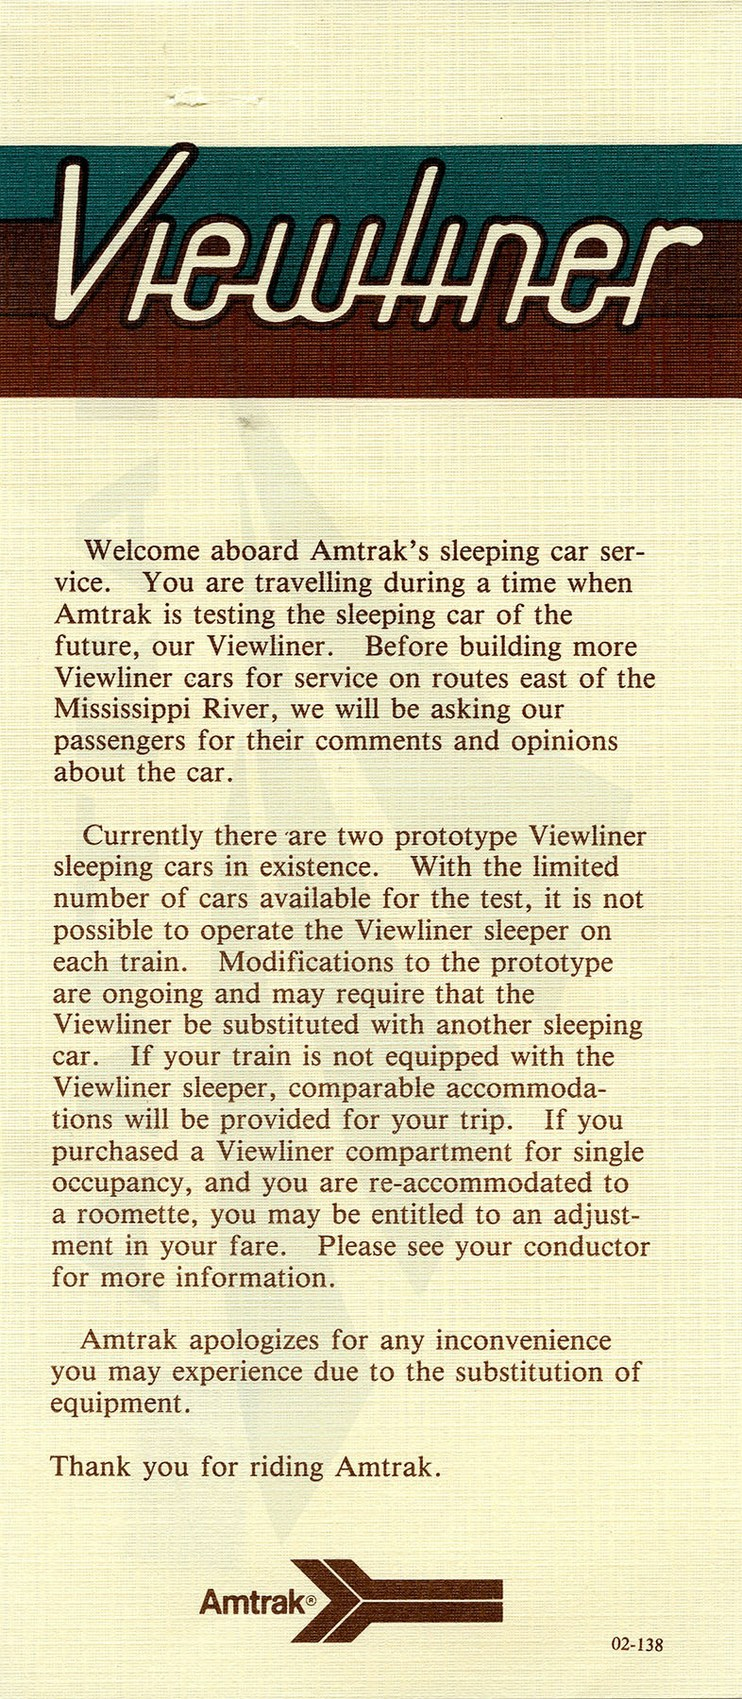 Viewliner flyer, 1980s.